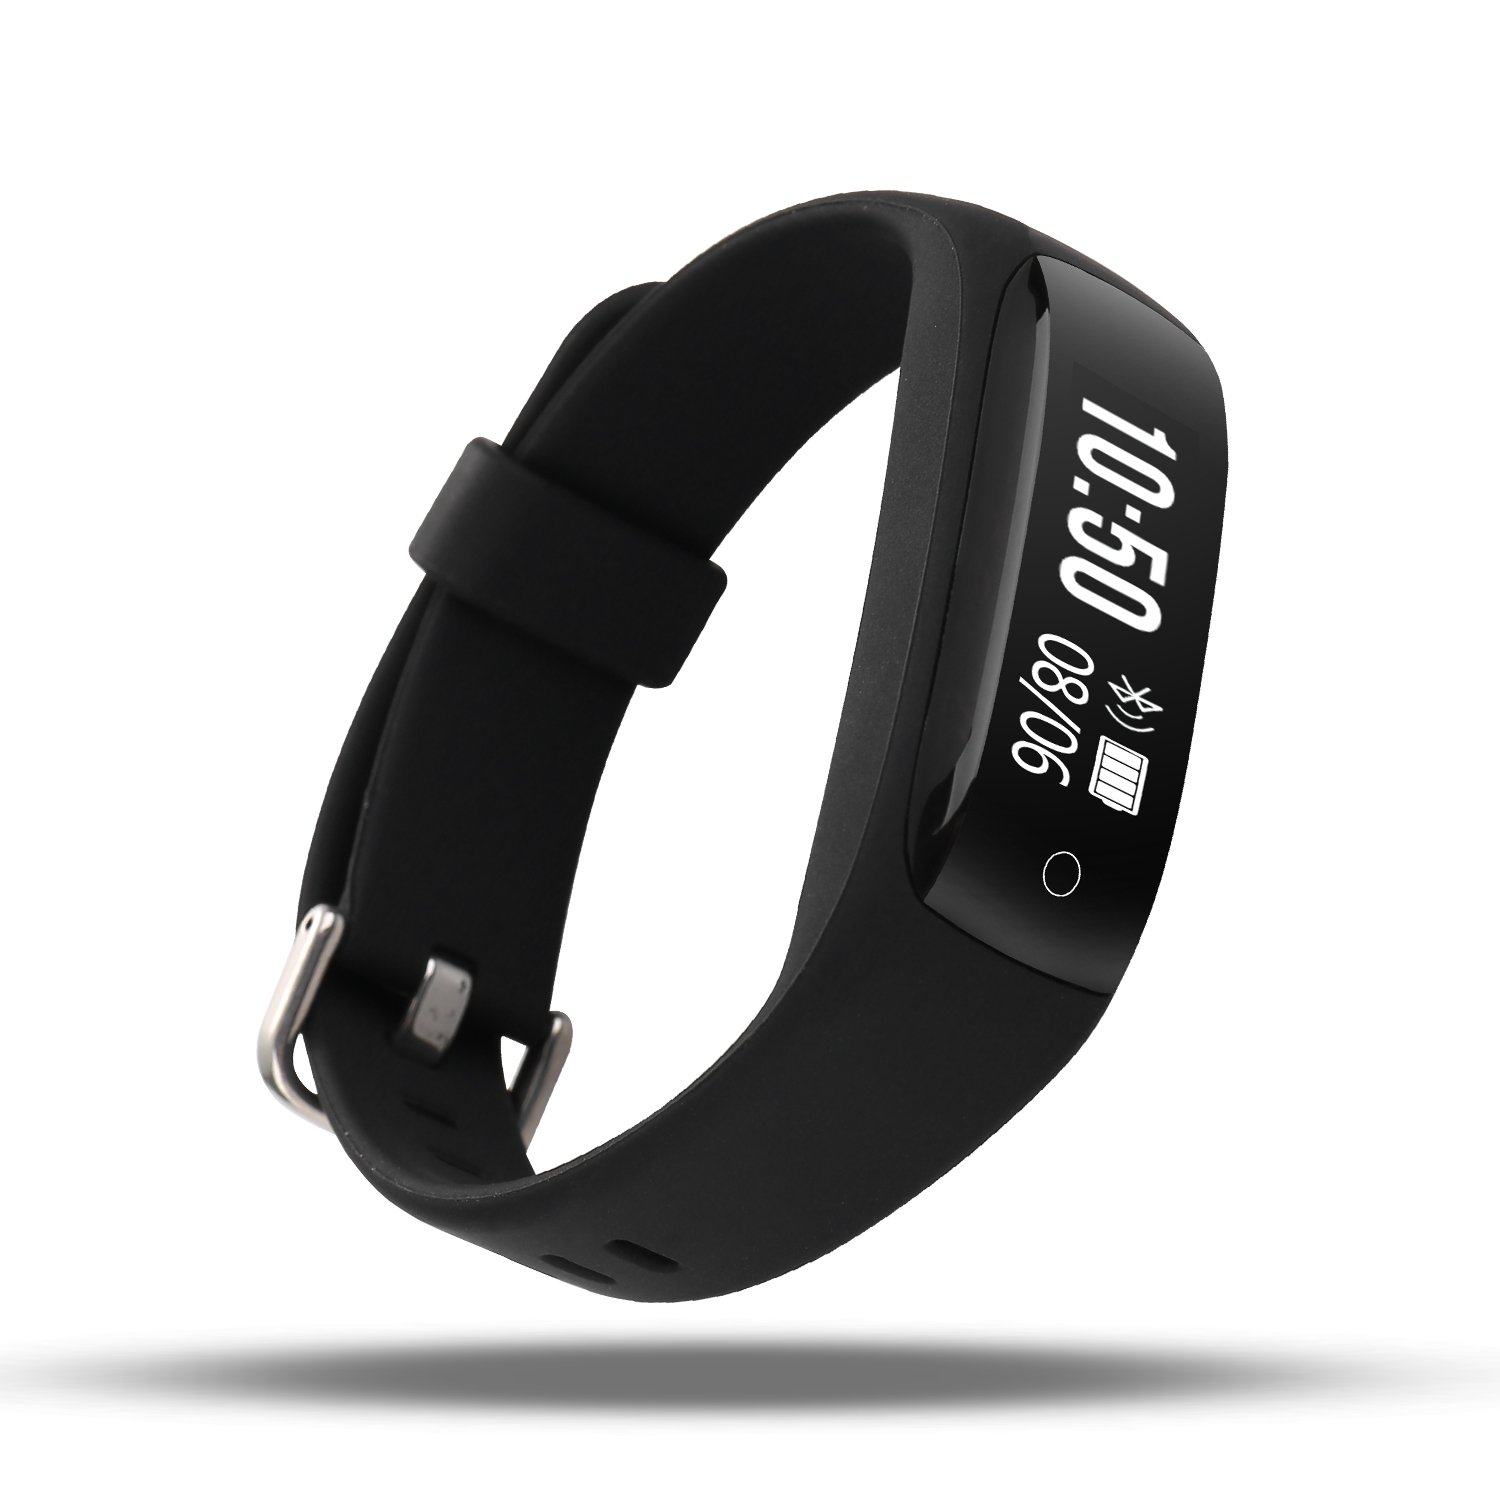 wireless charge oled activity as zone rate display worjaku hr heart bracelet monitor product fitbit new band smart wristband tracker fitness